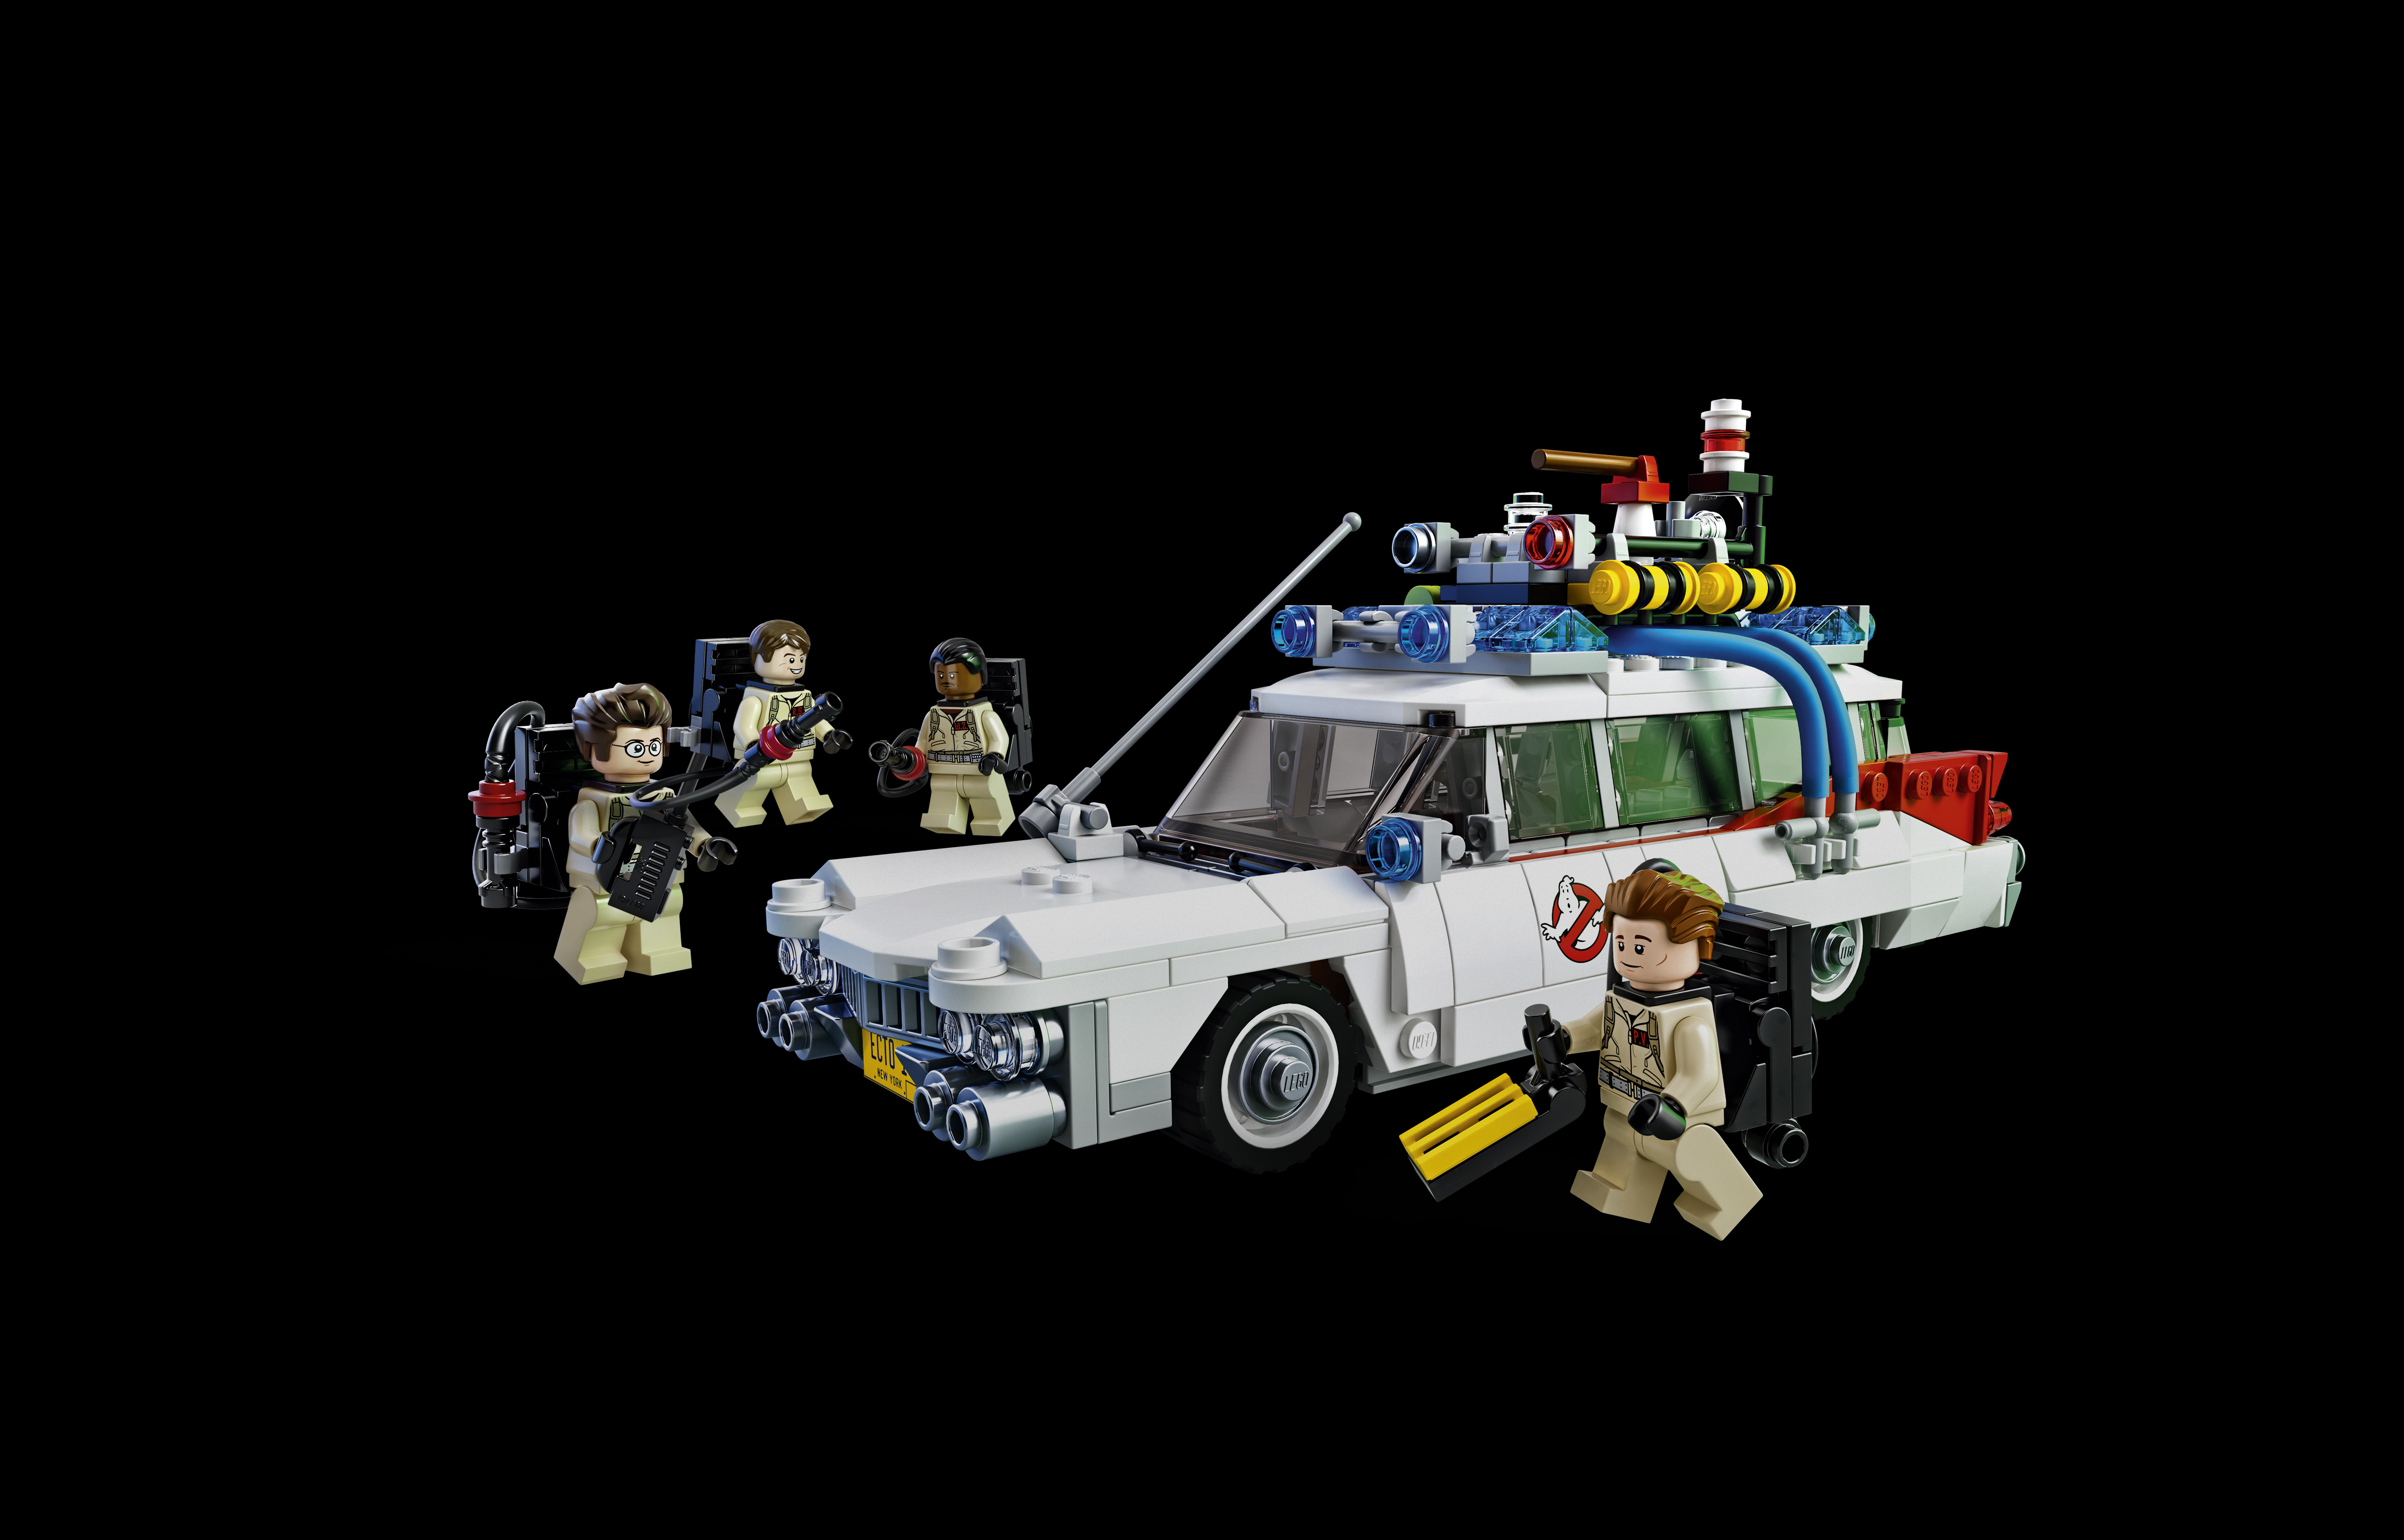 Lego Cuusso Ghostbusters Coming In June 2014